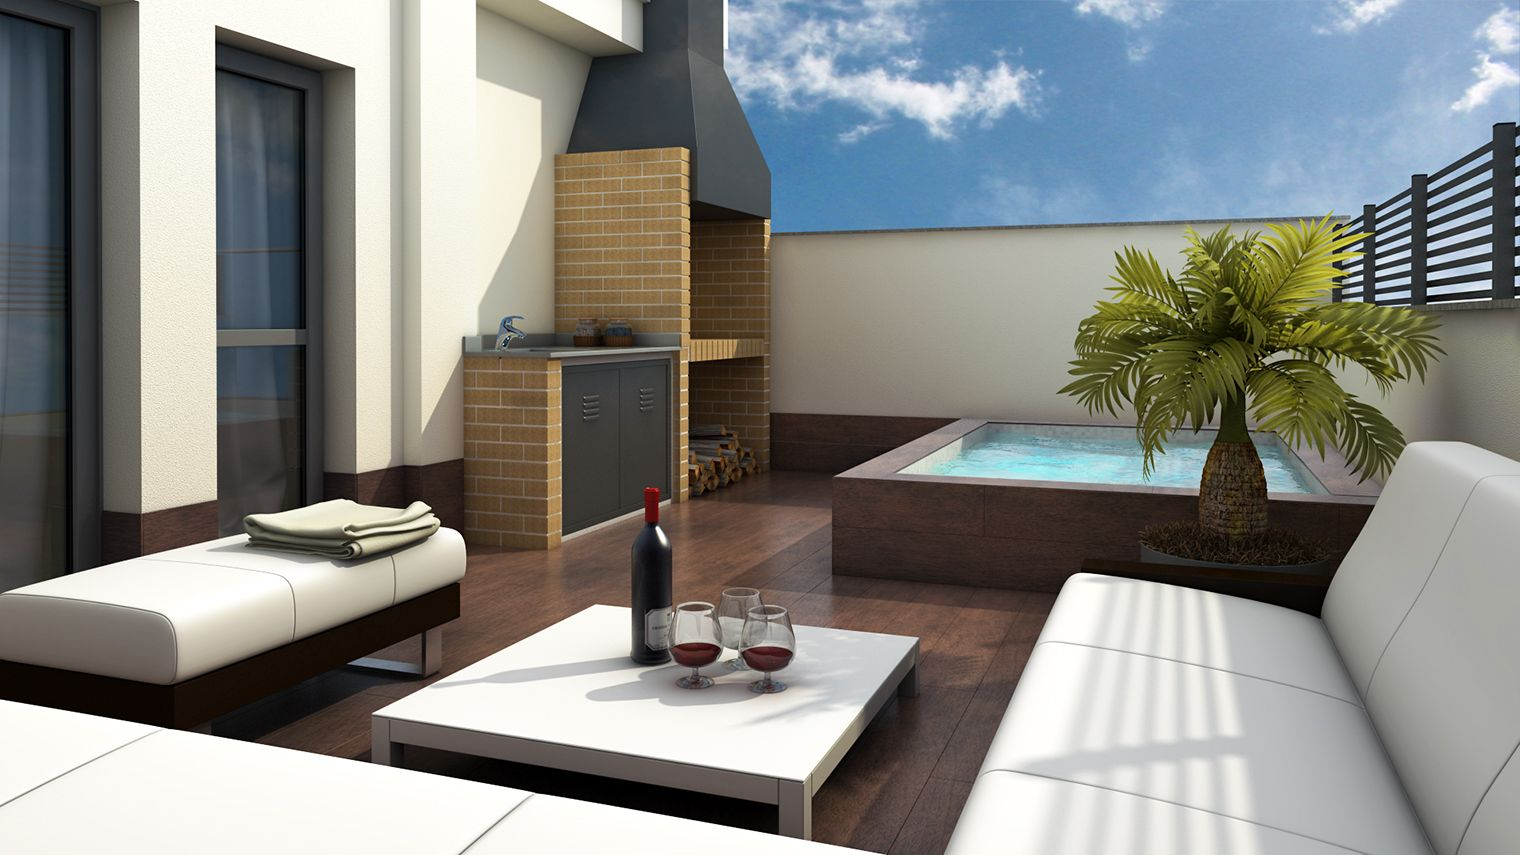 Terraza con jacuzzi privado buscar con google home for Ideas terrazas economicas